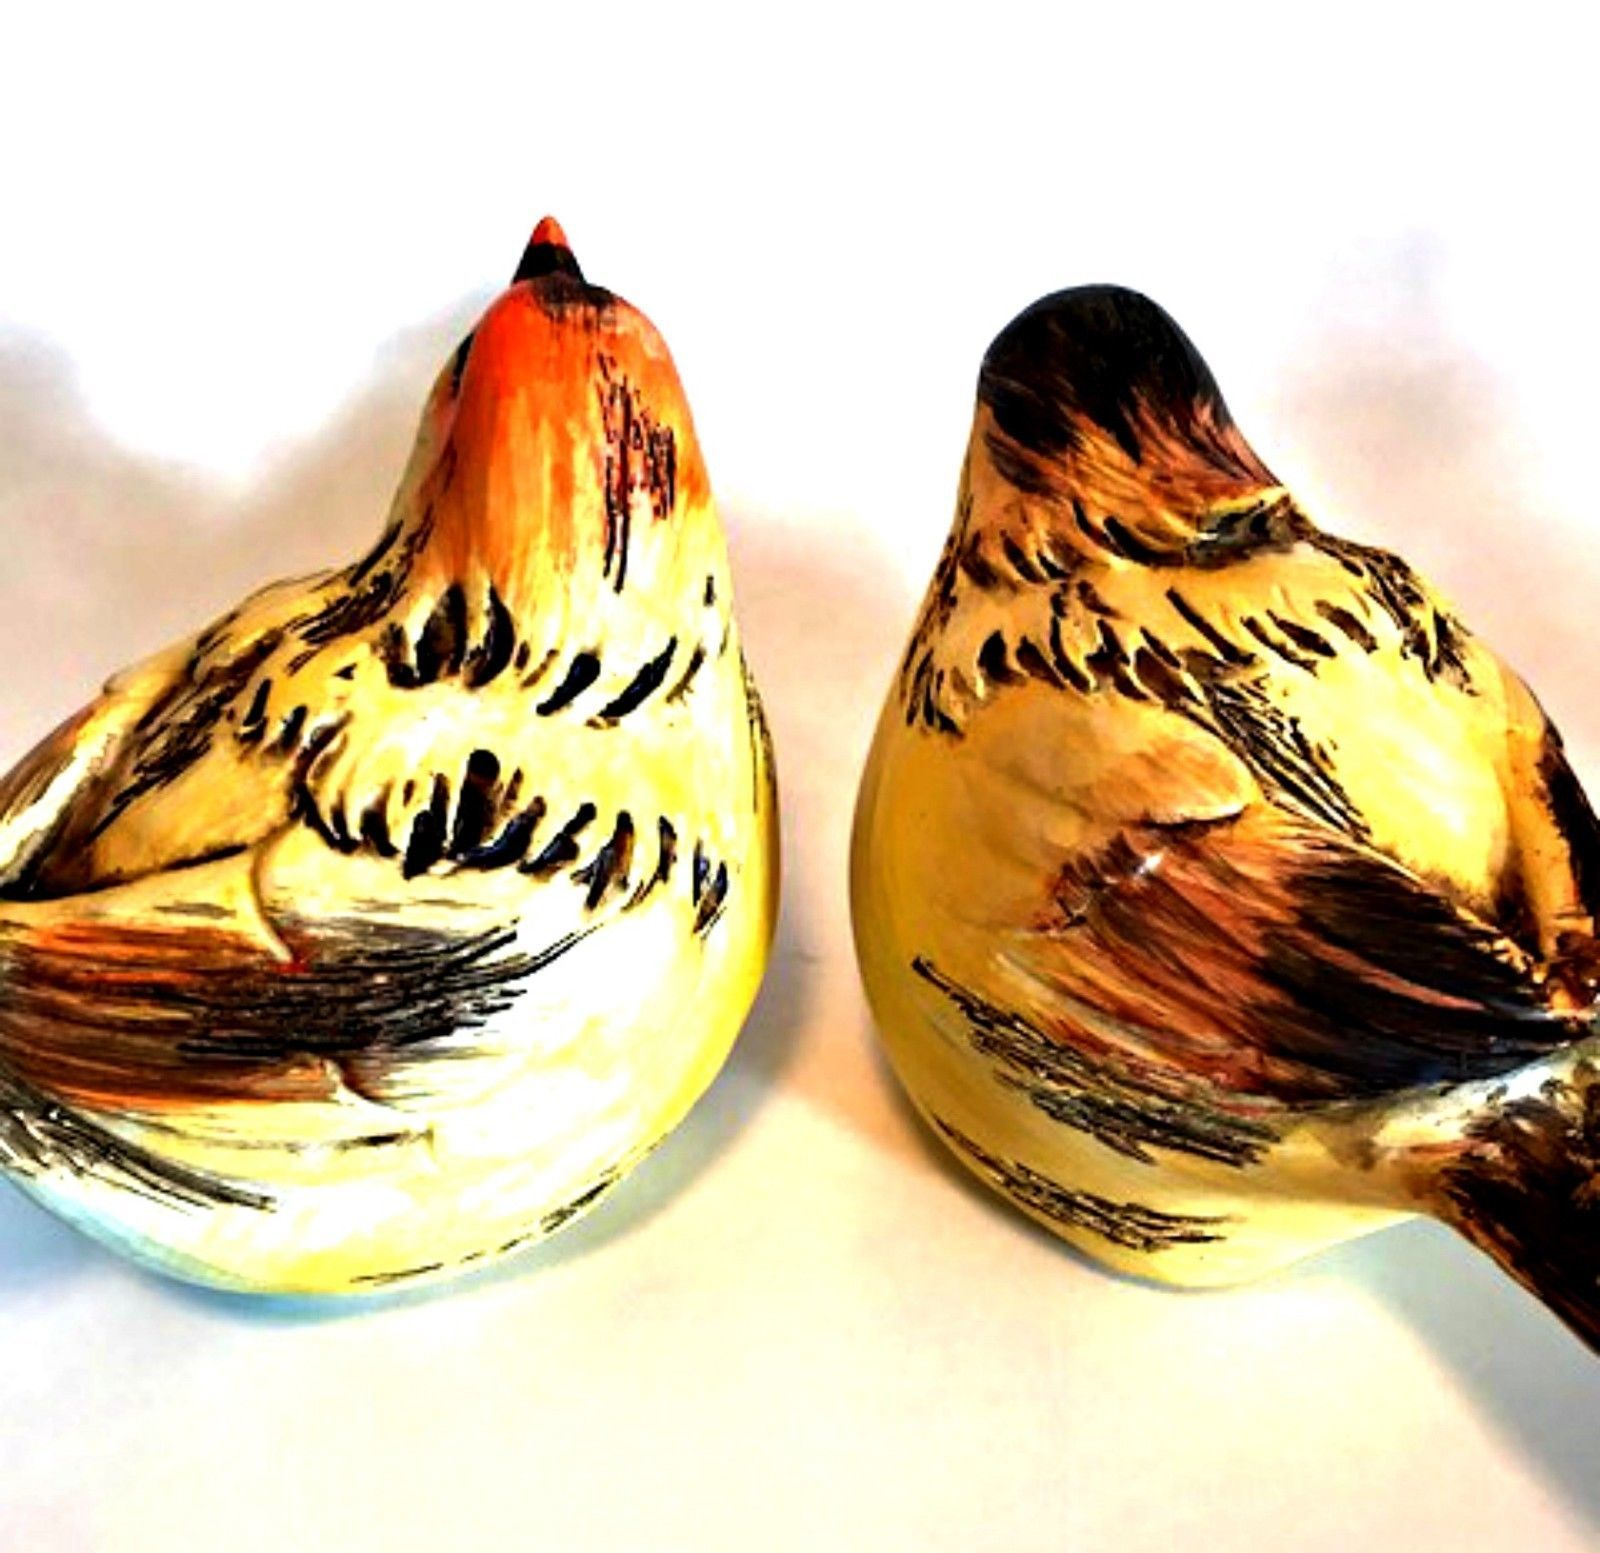 Bird Figurines Wood Look Pair Detailed Wild Birds Beige Brown Orange 6 inches